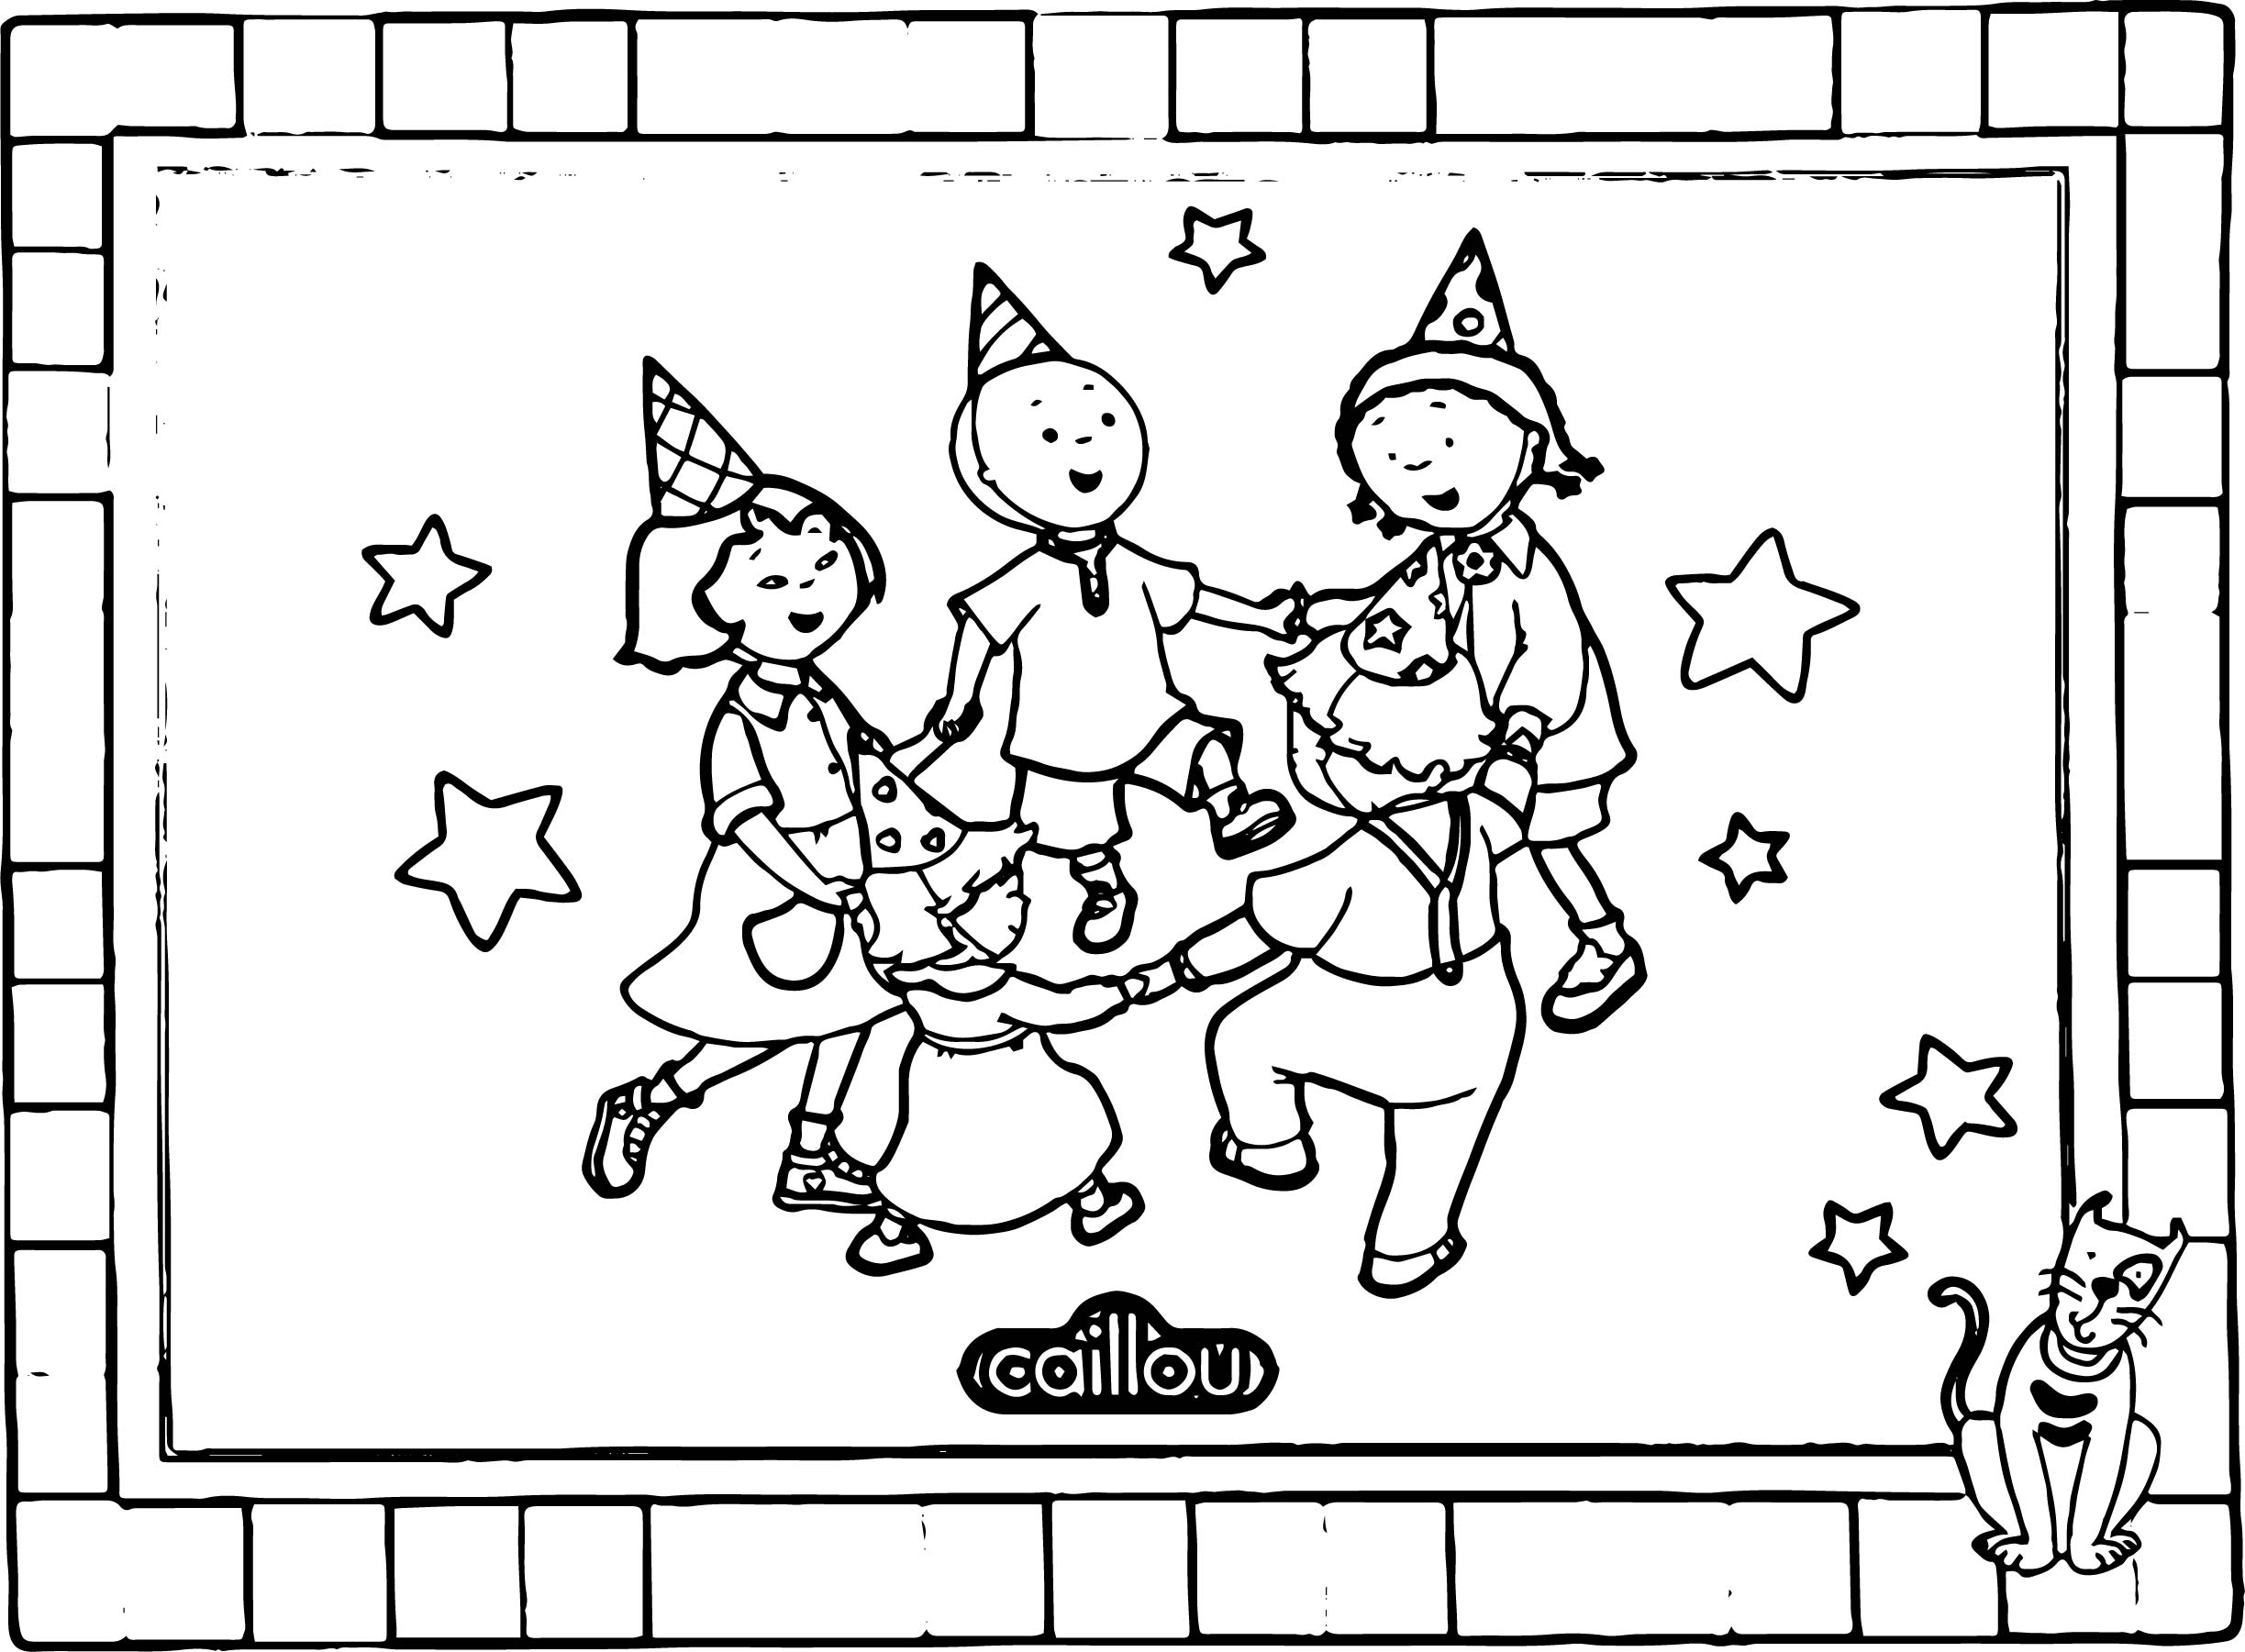 Caillou Dance Board Paper Sheet Coloring Page